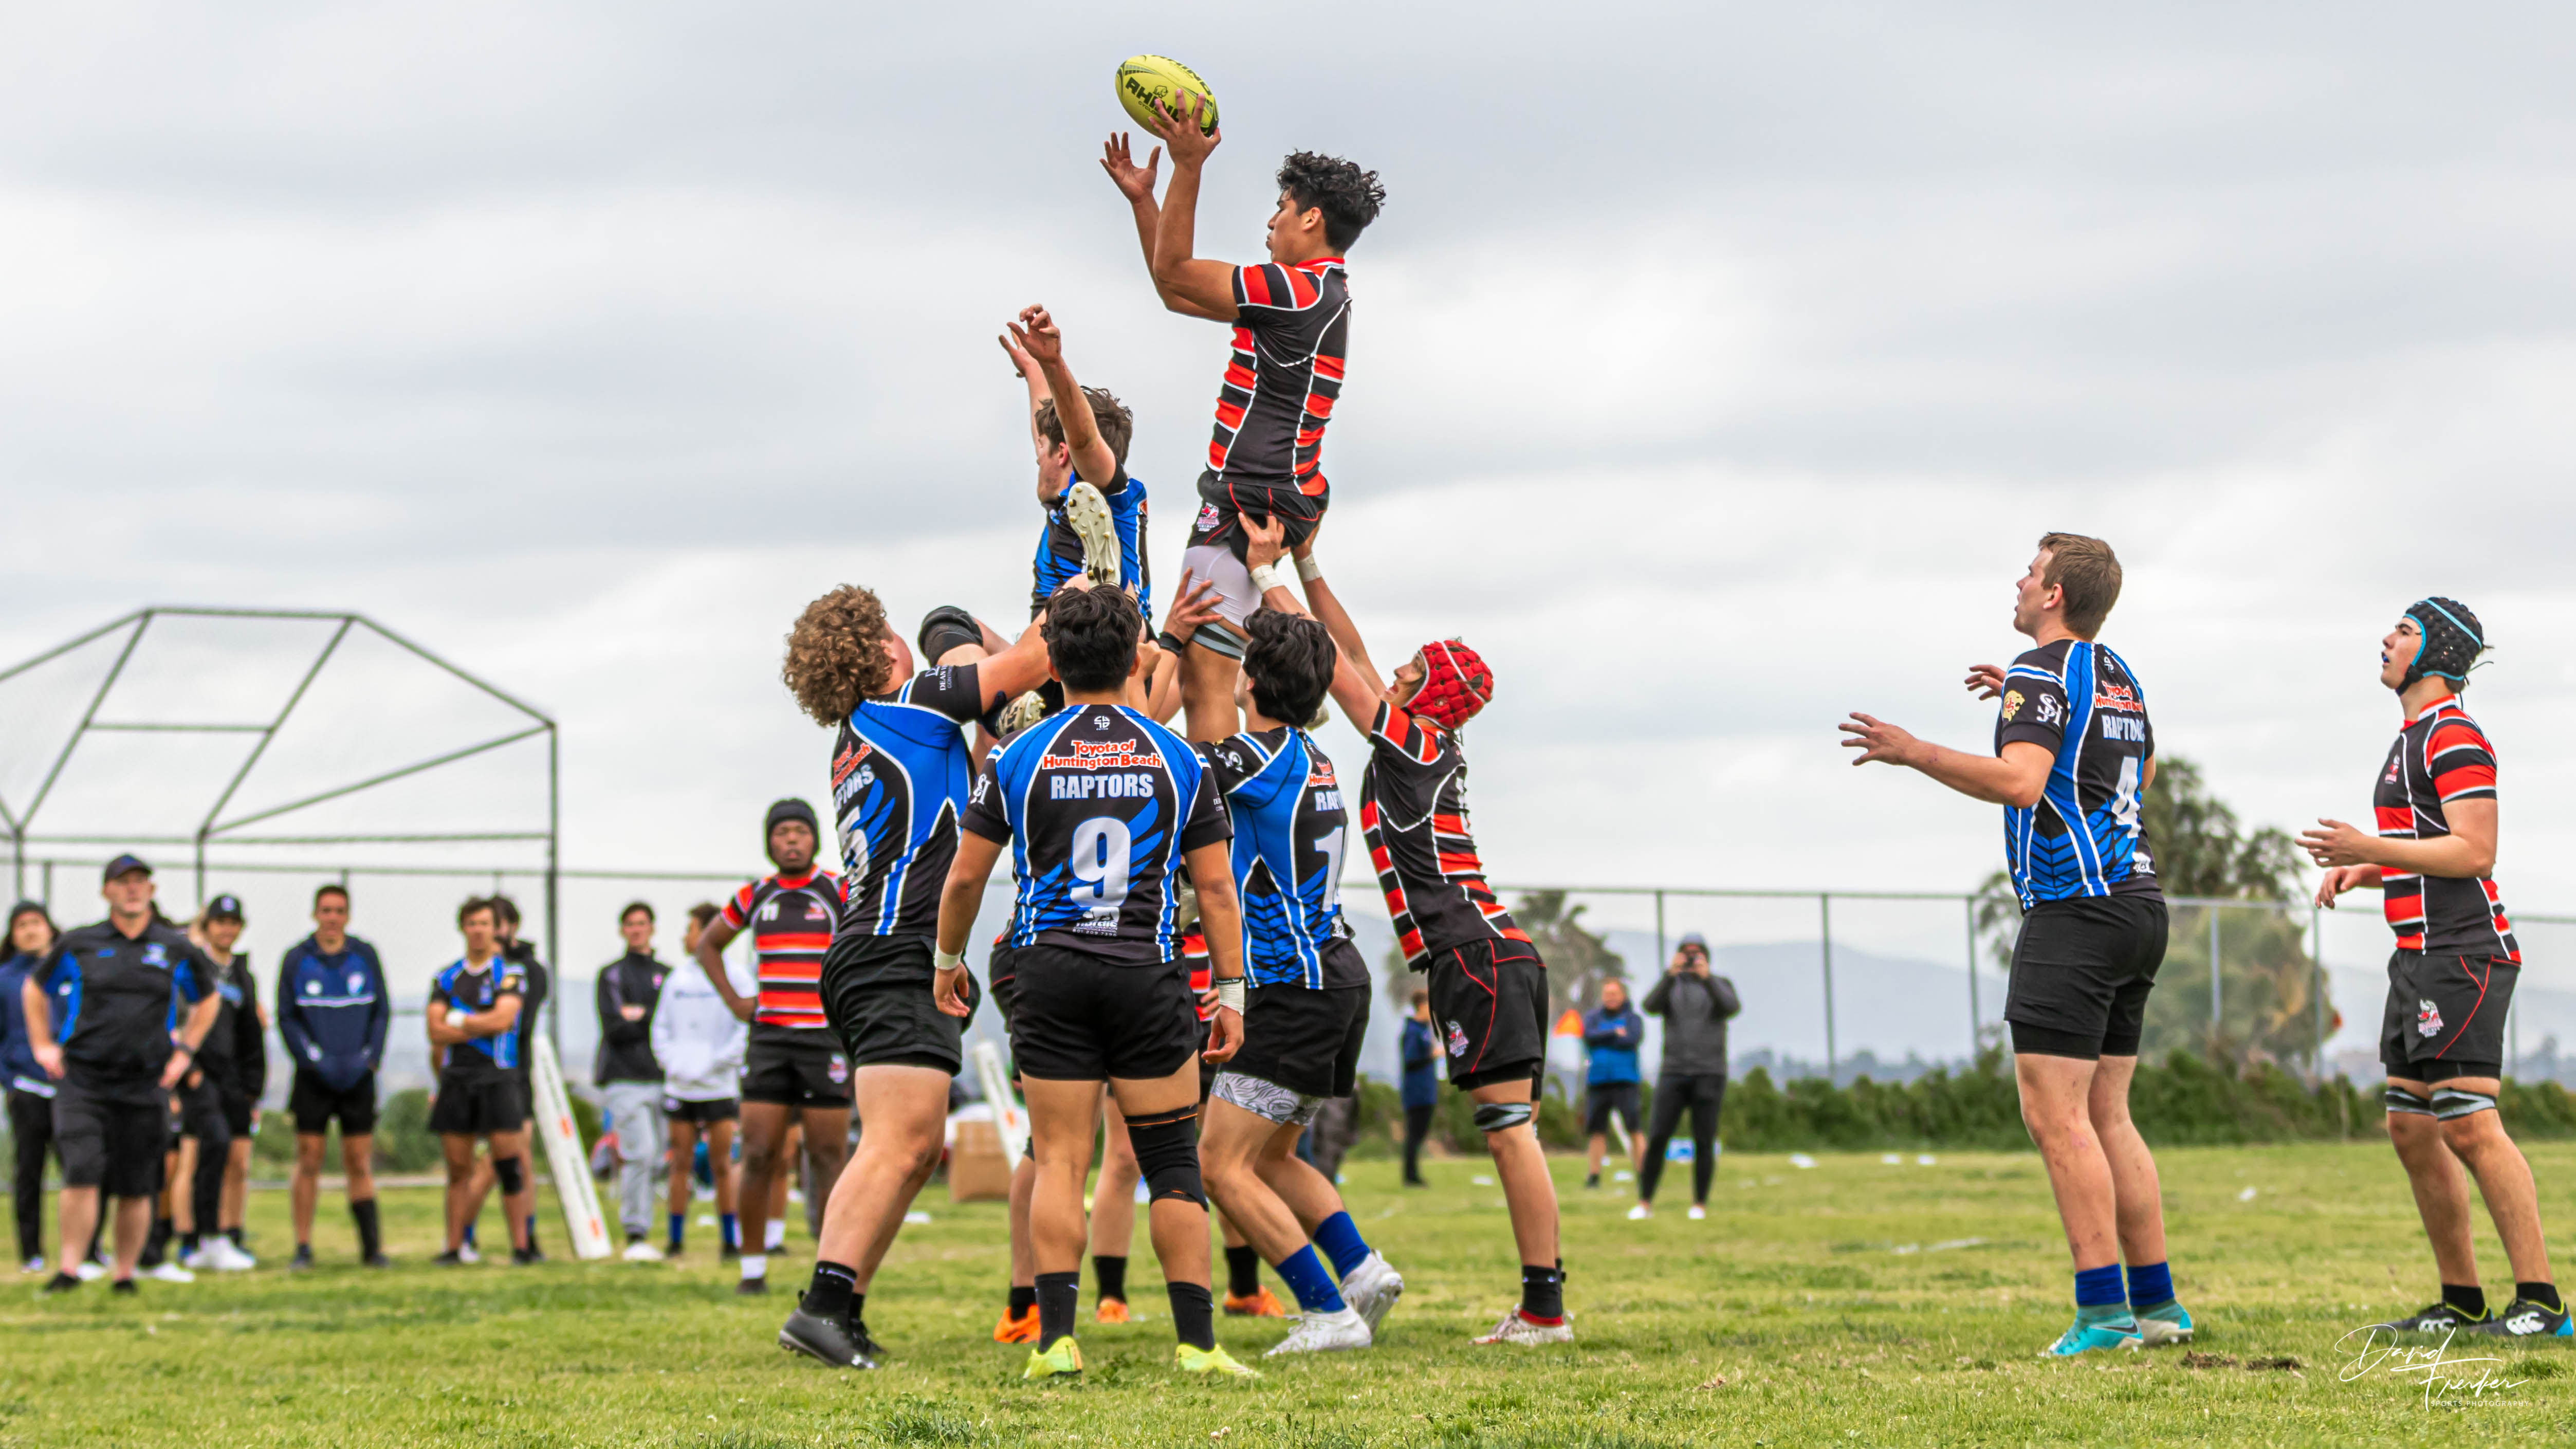 LaJollaRugby70